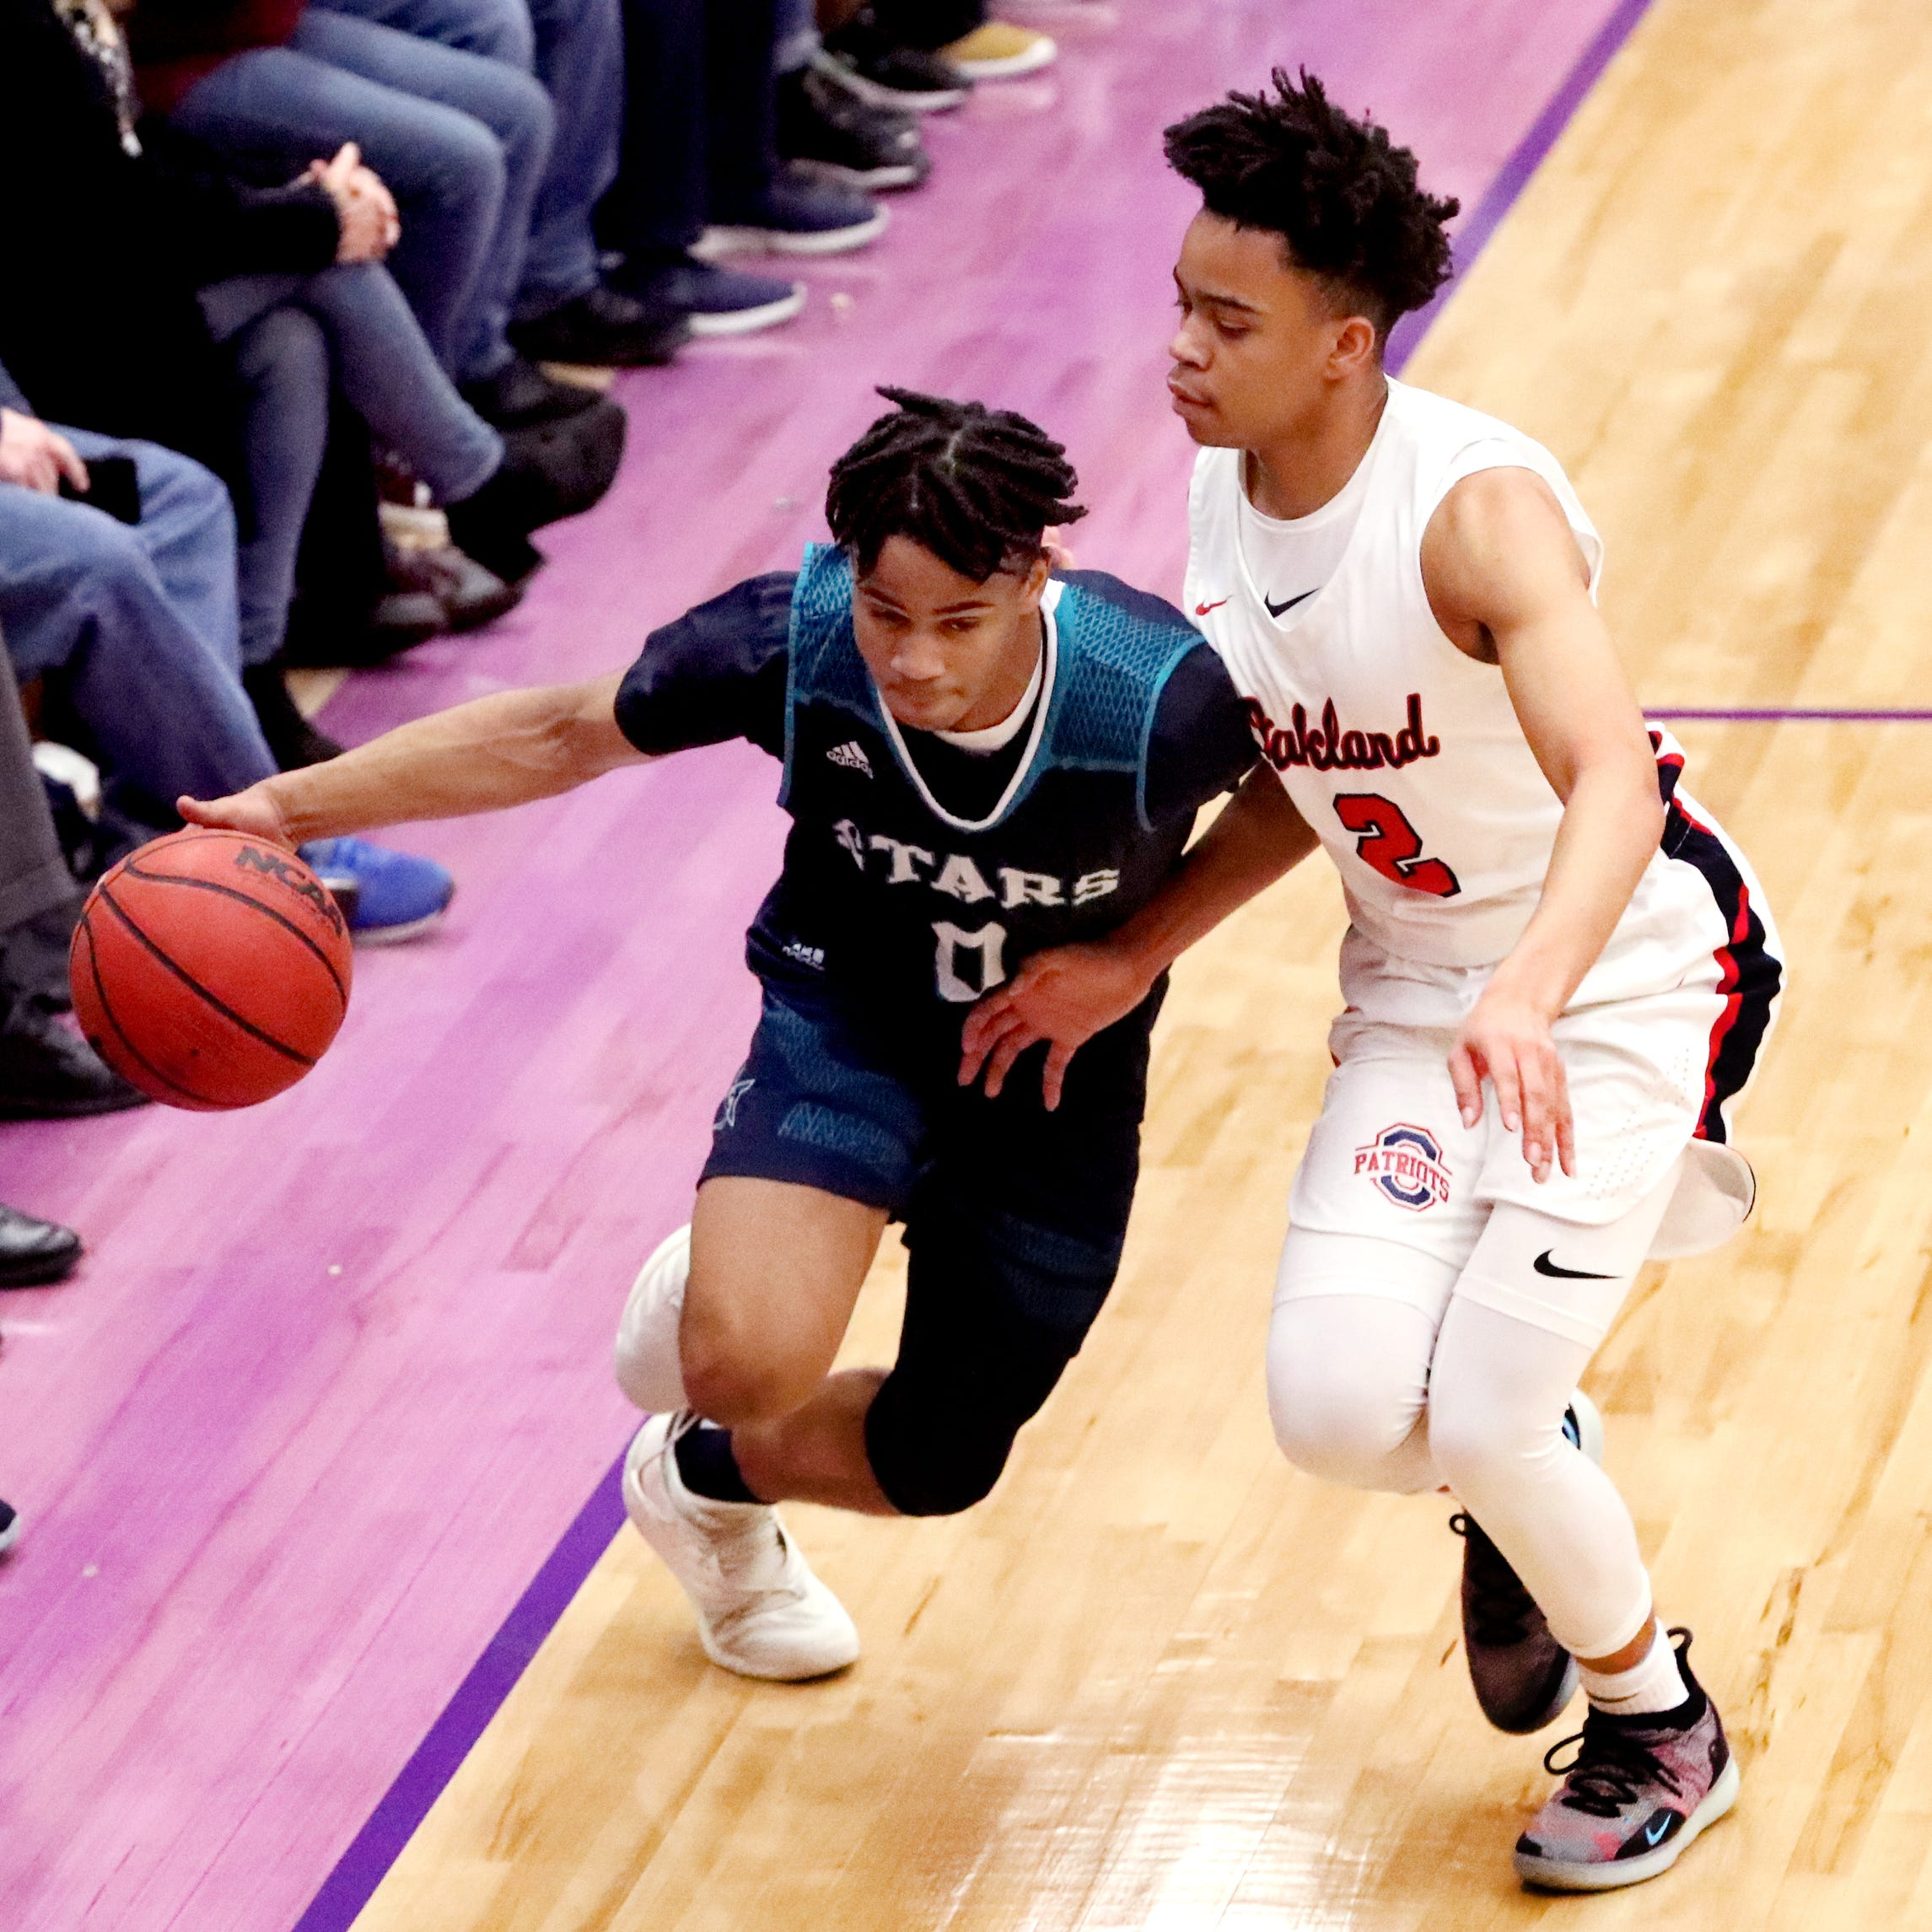 Siegel's Zion Swader (0) brings the ball up court as Oakland's Ray Tyler (2) guards him during the District boys 7-AAA Championship game, on Tuesday, Feb. 19, 2019.